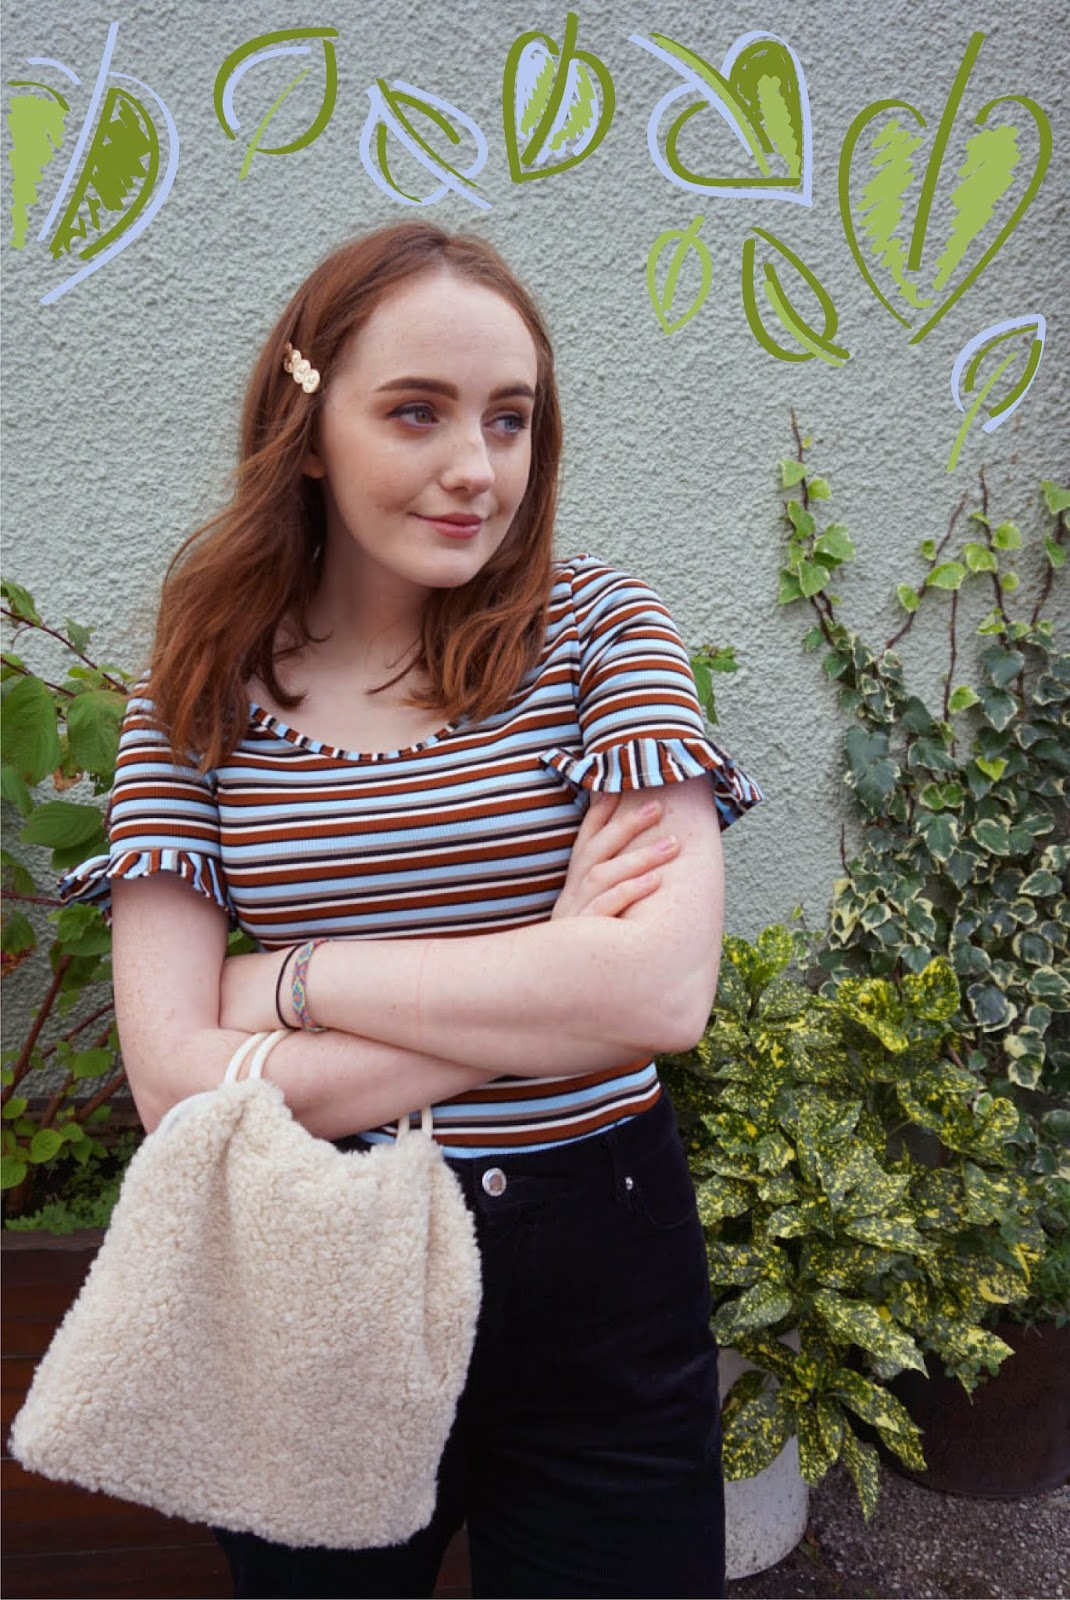 blogger styling autumn trends including brown stripes, hair clips, cord and round handle bags, with colourful leaf illustration